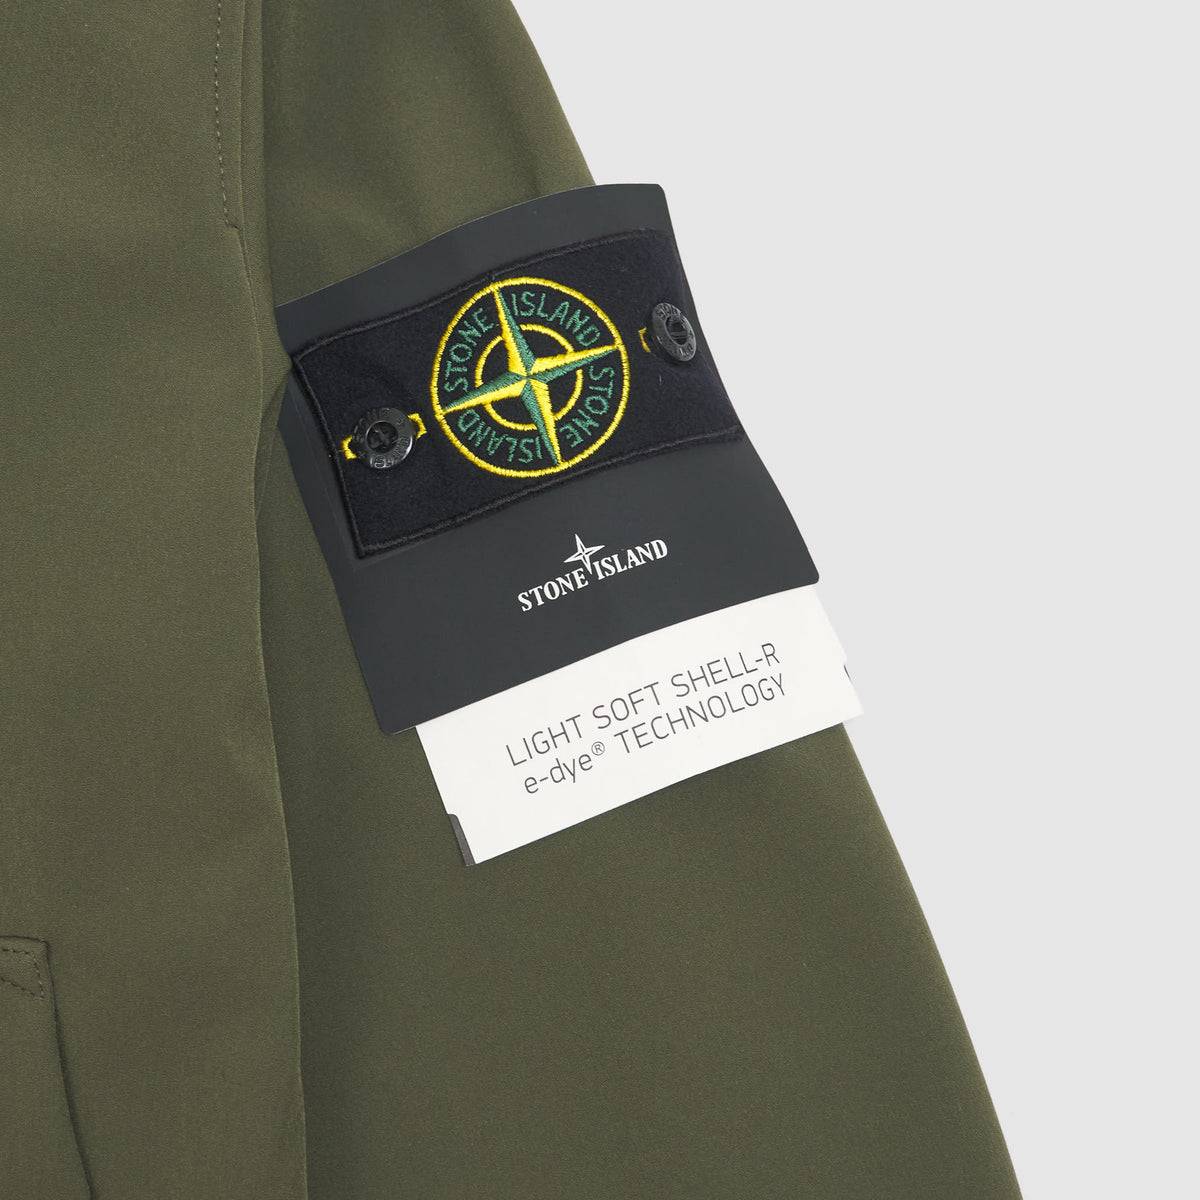 Stone Island Light Soft Shell-R e-dye Jacket